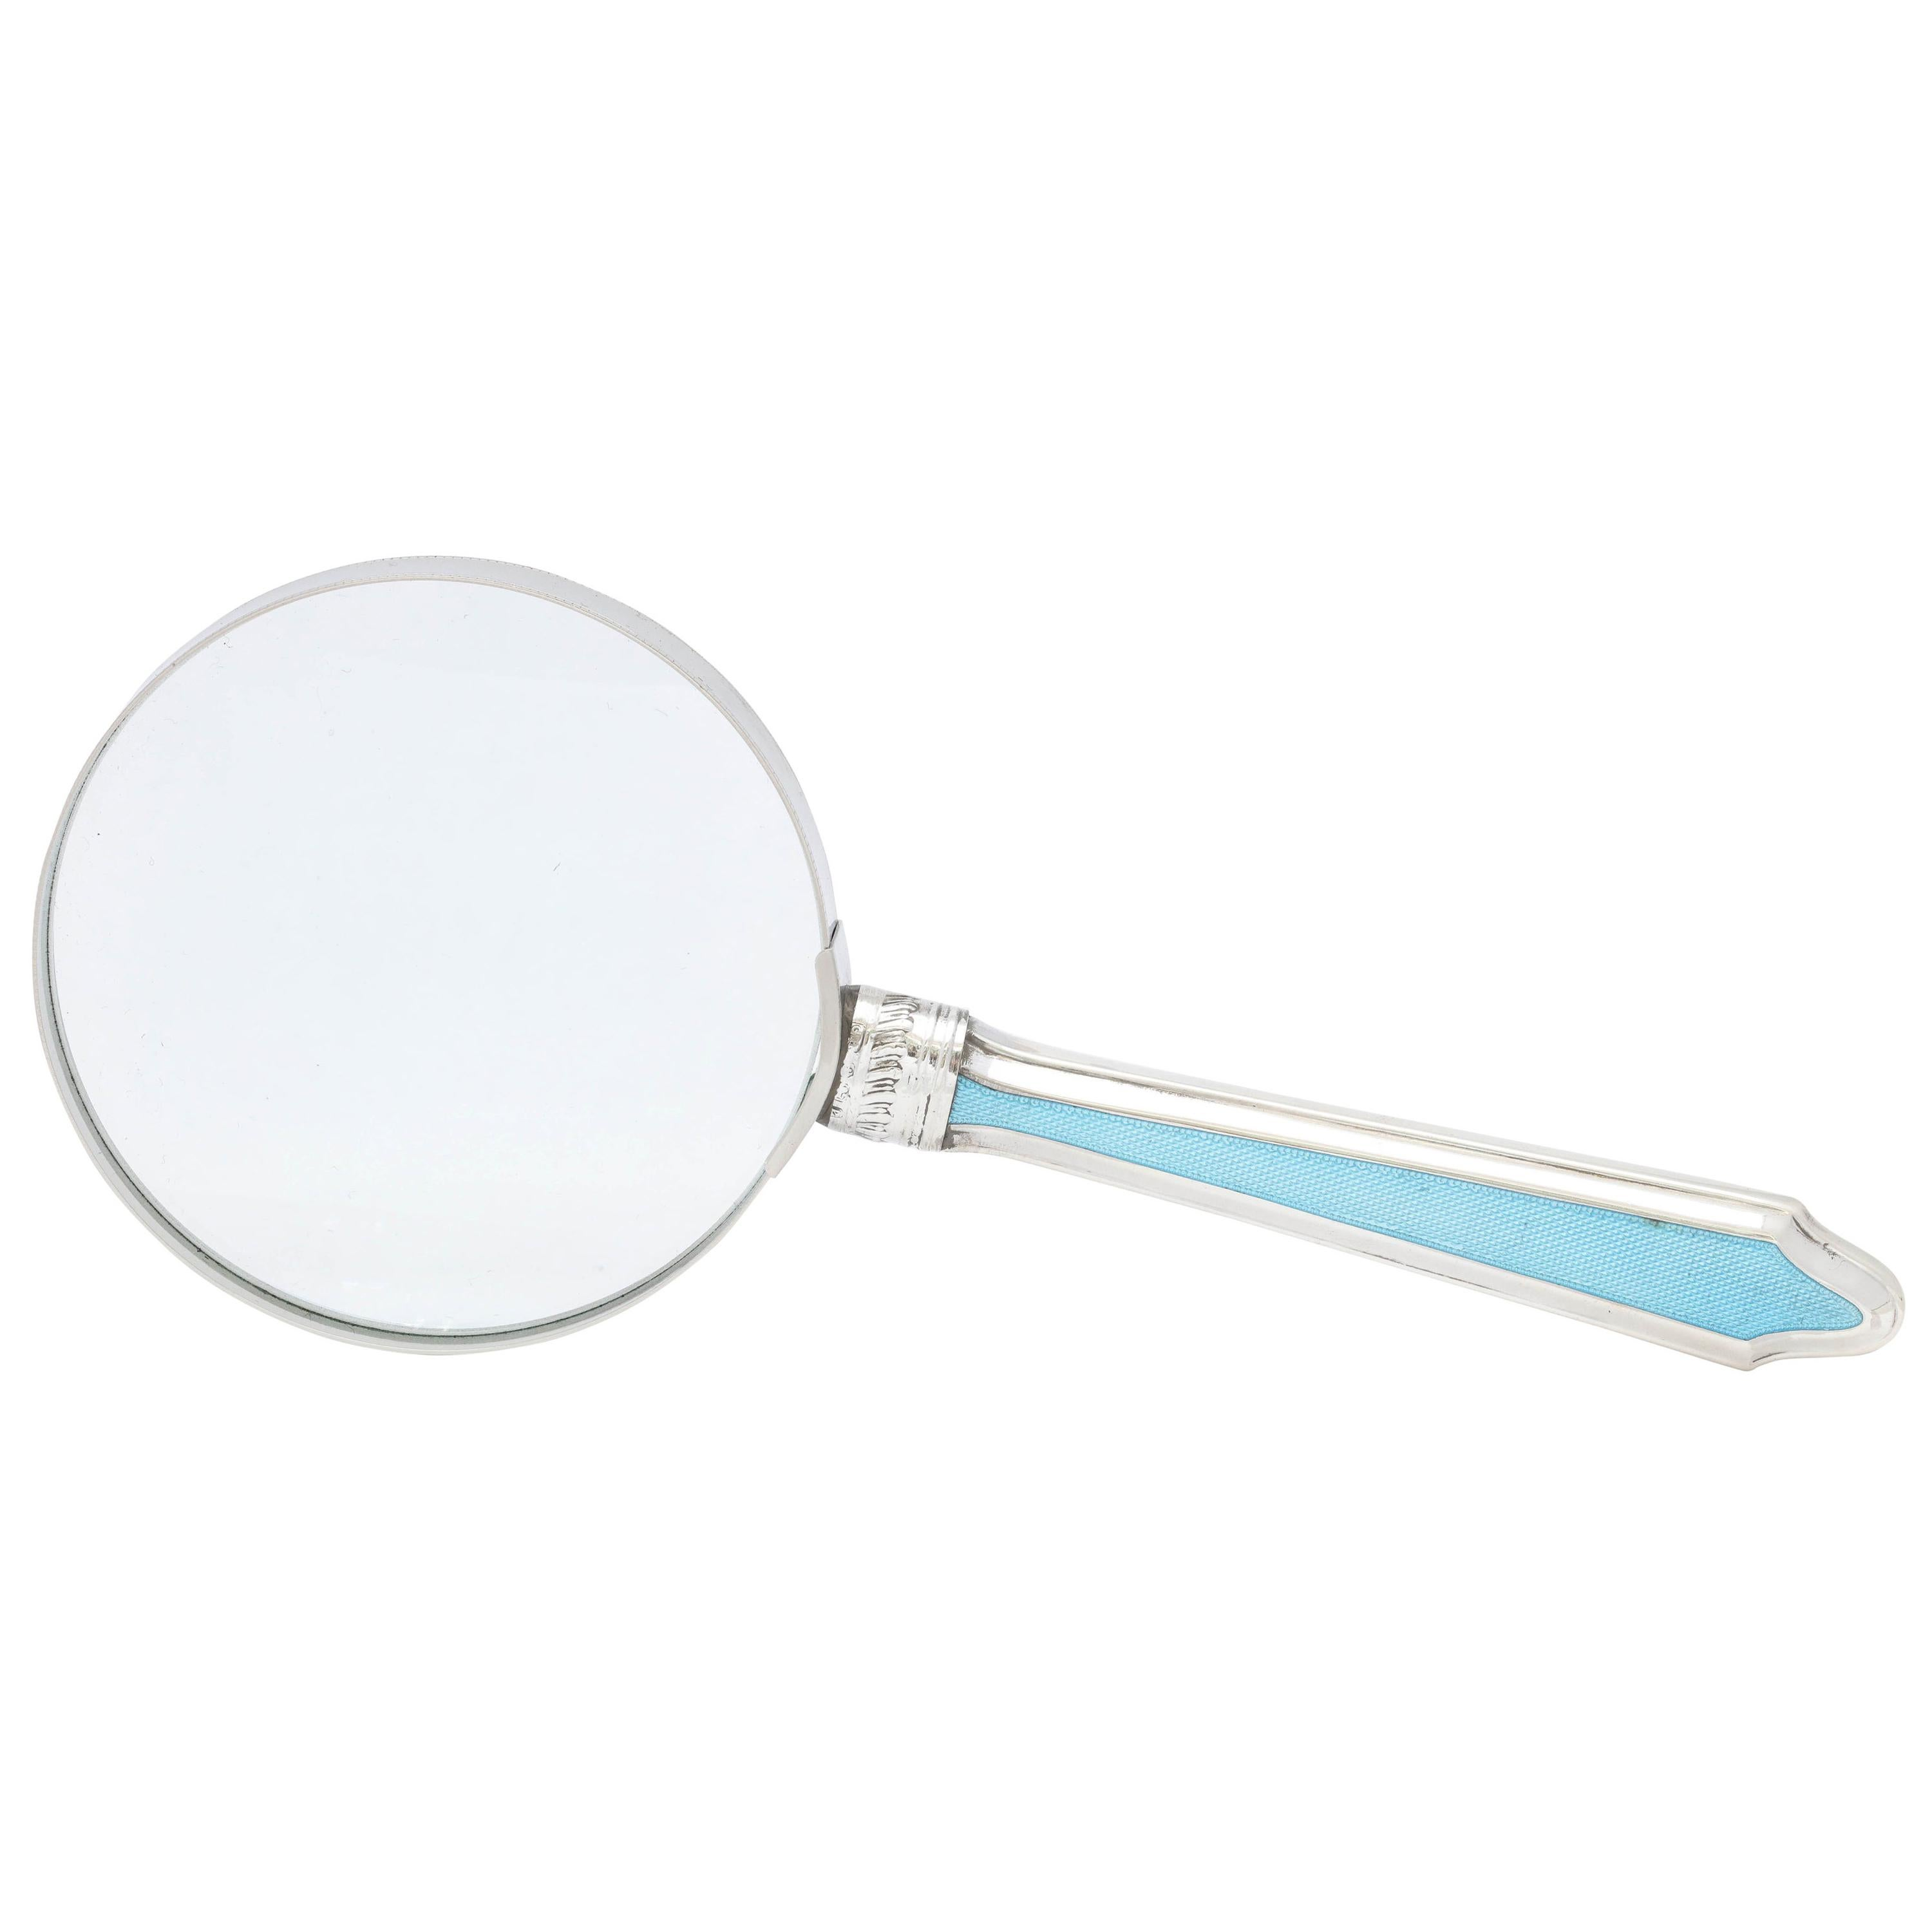 Edwardian Sterling Silver and Blue Guilloche Enamel-Mounted Magnifying Glass